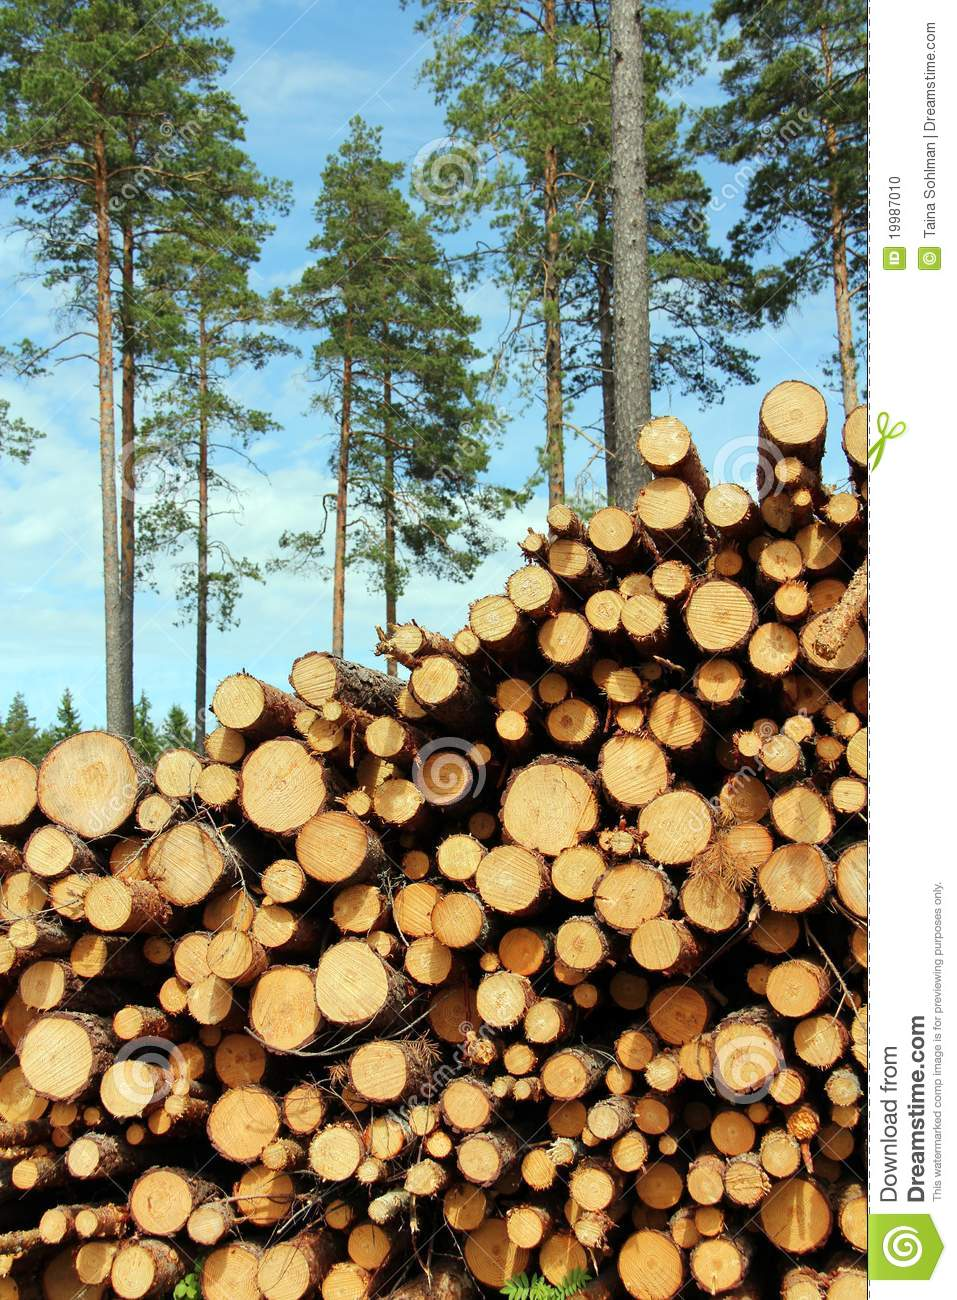 A large stack of wood with pine trees background stock for What to make with tree logs